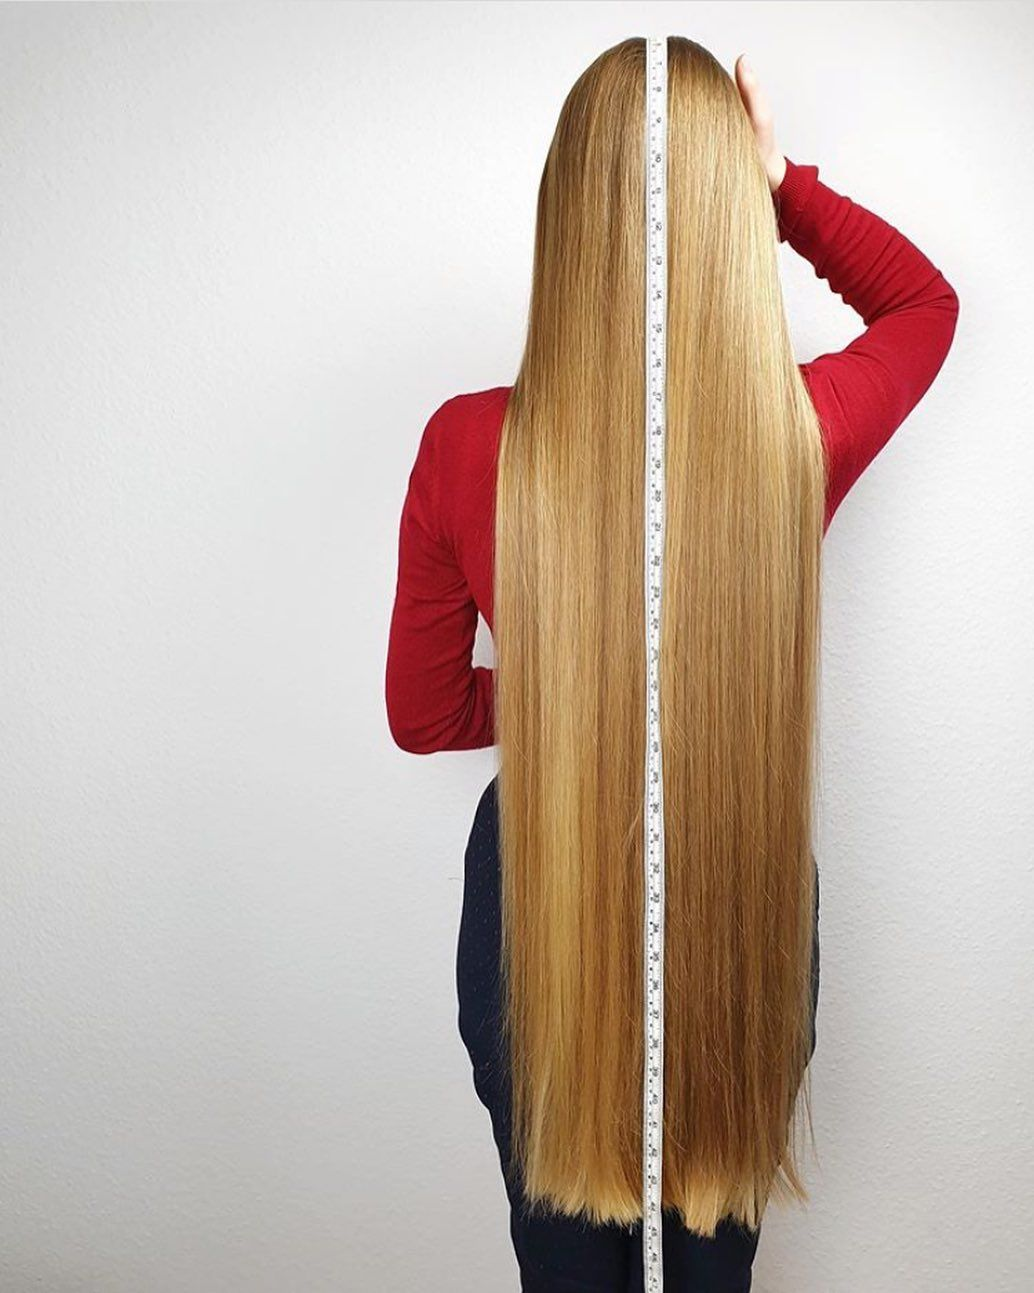 Sexiest Hair On Instagram Real Life Rapunzel Model Poland Square360 Pl Portfolio All In 2020 Long Hair Styles Really Long Hair Beautiful Long Hair